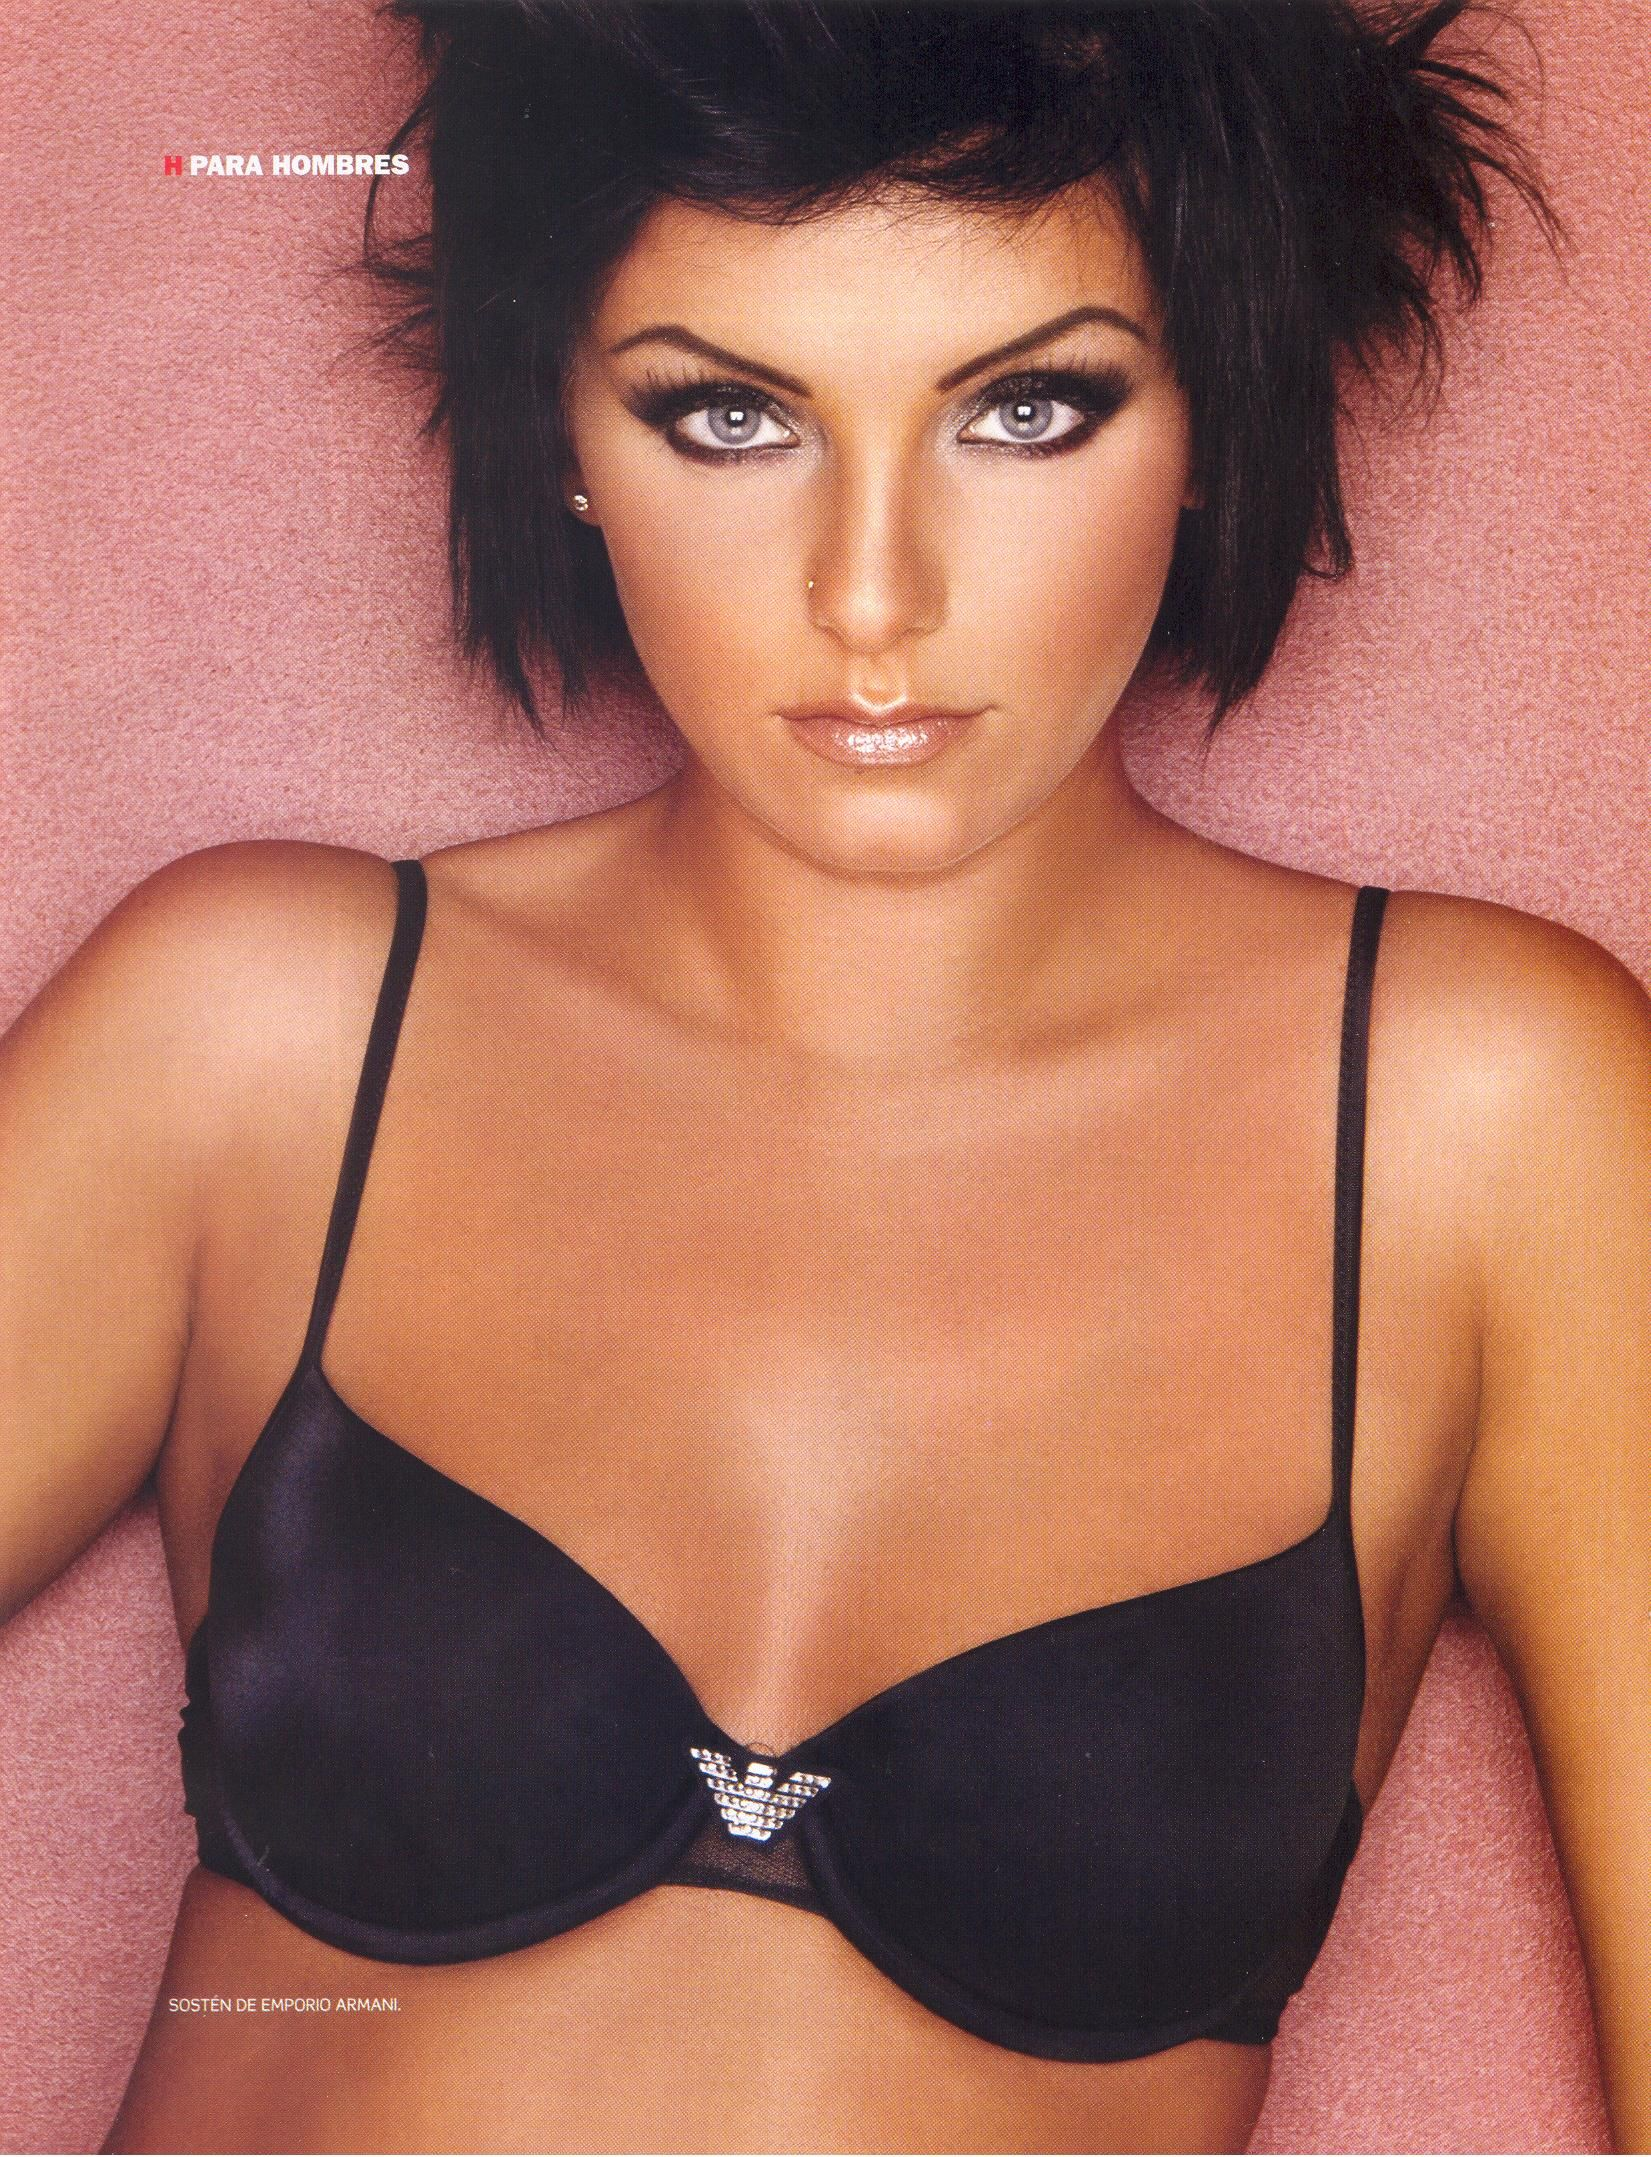 Valuable piece porno de julia volkova magnificent